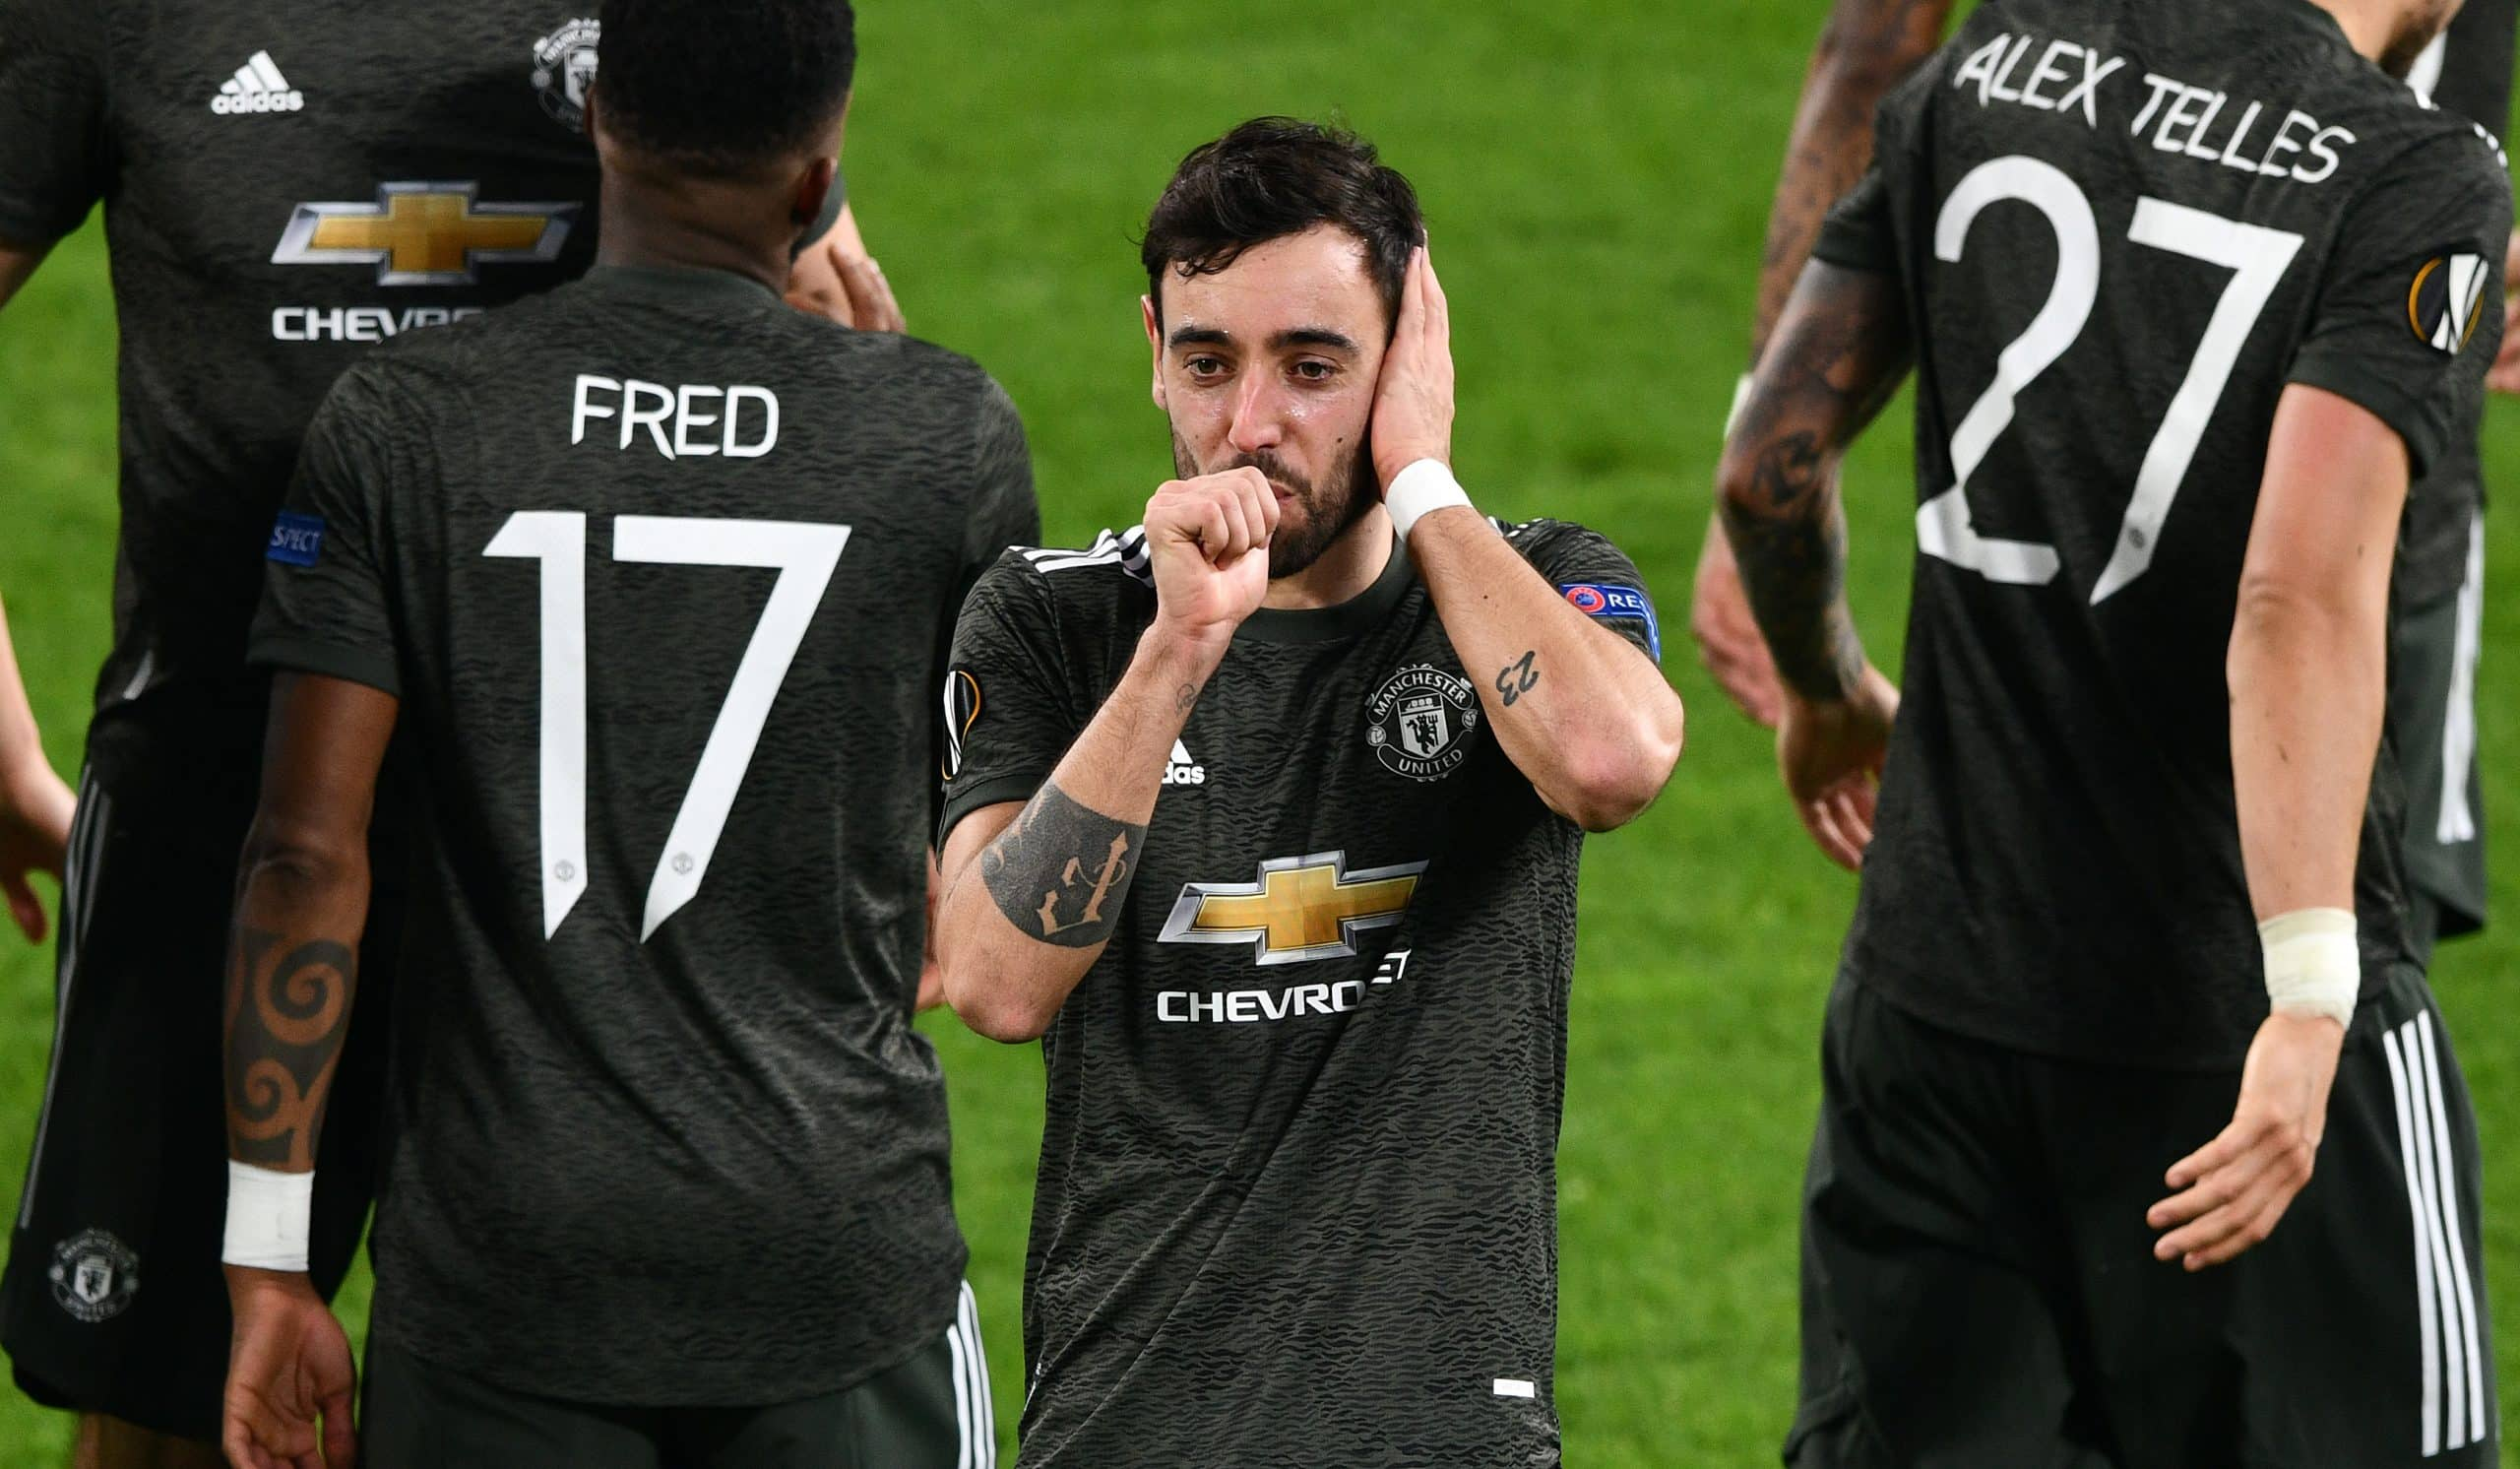 Man United to offer Bruno Fernandes new contract after Europa League final - 101 great goals